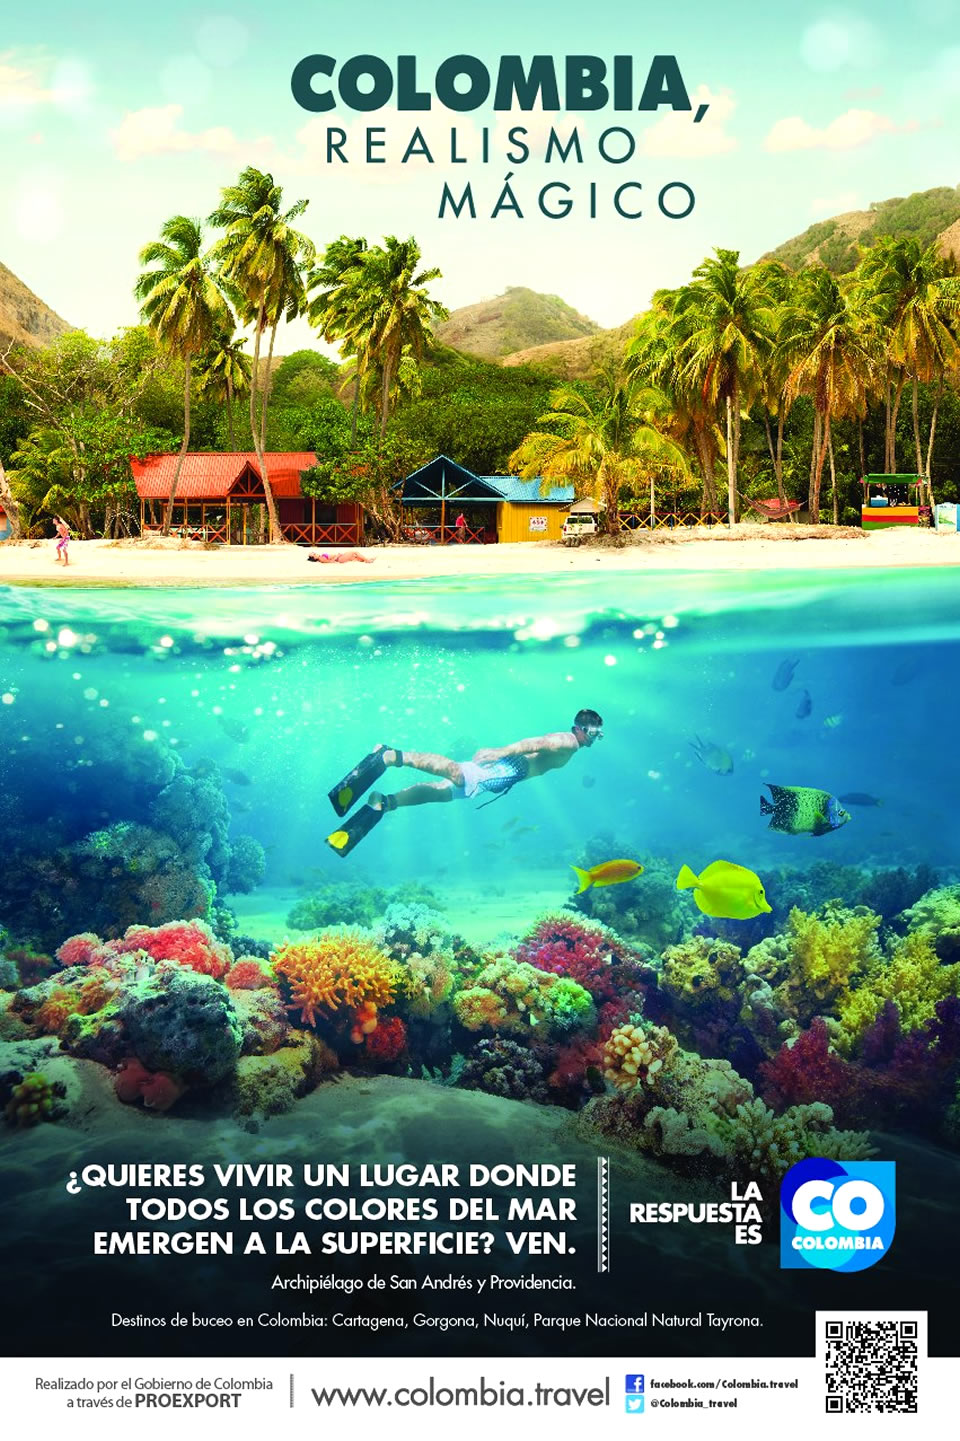 San Andres Tourism Advertisement Poster of Colombia Magical Realism